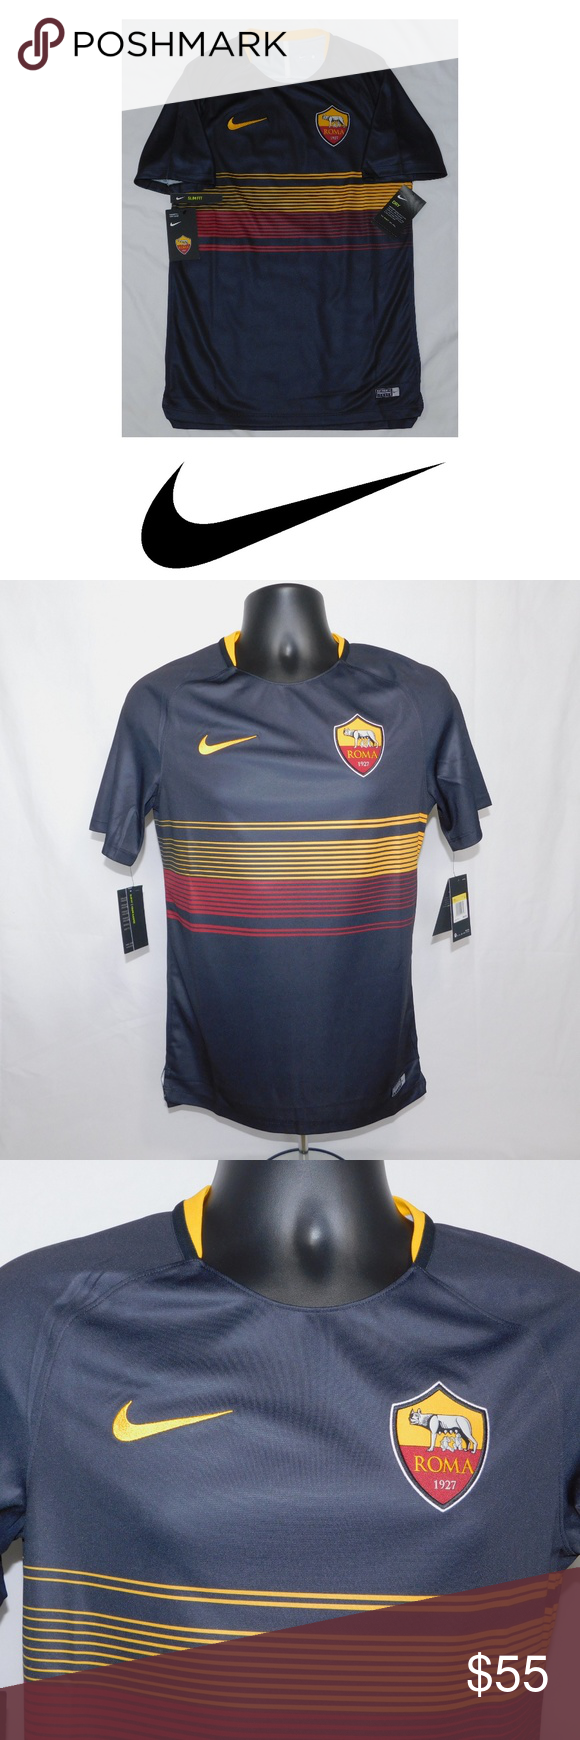 e84025a1b Nike AS Roma Squad Top Soccer Jersey Nike Roma 2018/19 Dry Squad GX  training jersey Size small 100% polyester Dri-FIT tech Slim fit Taped  collar Angle cut ...